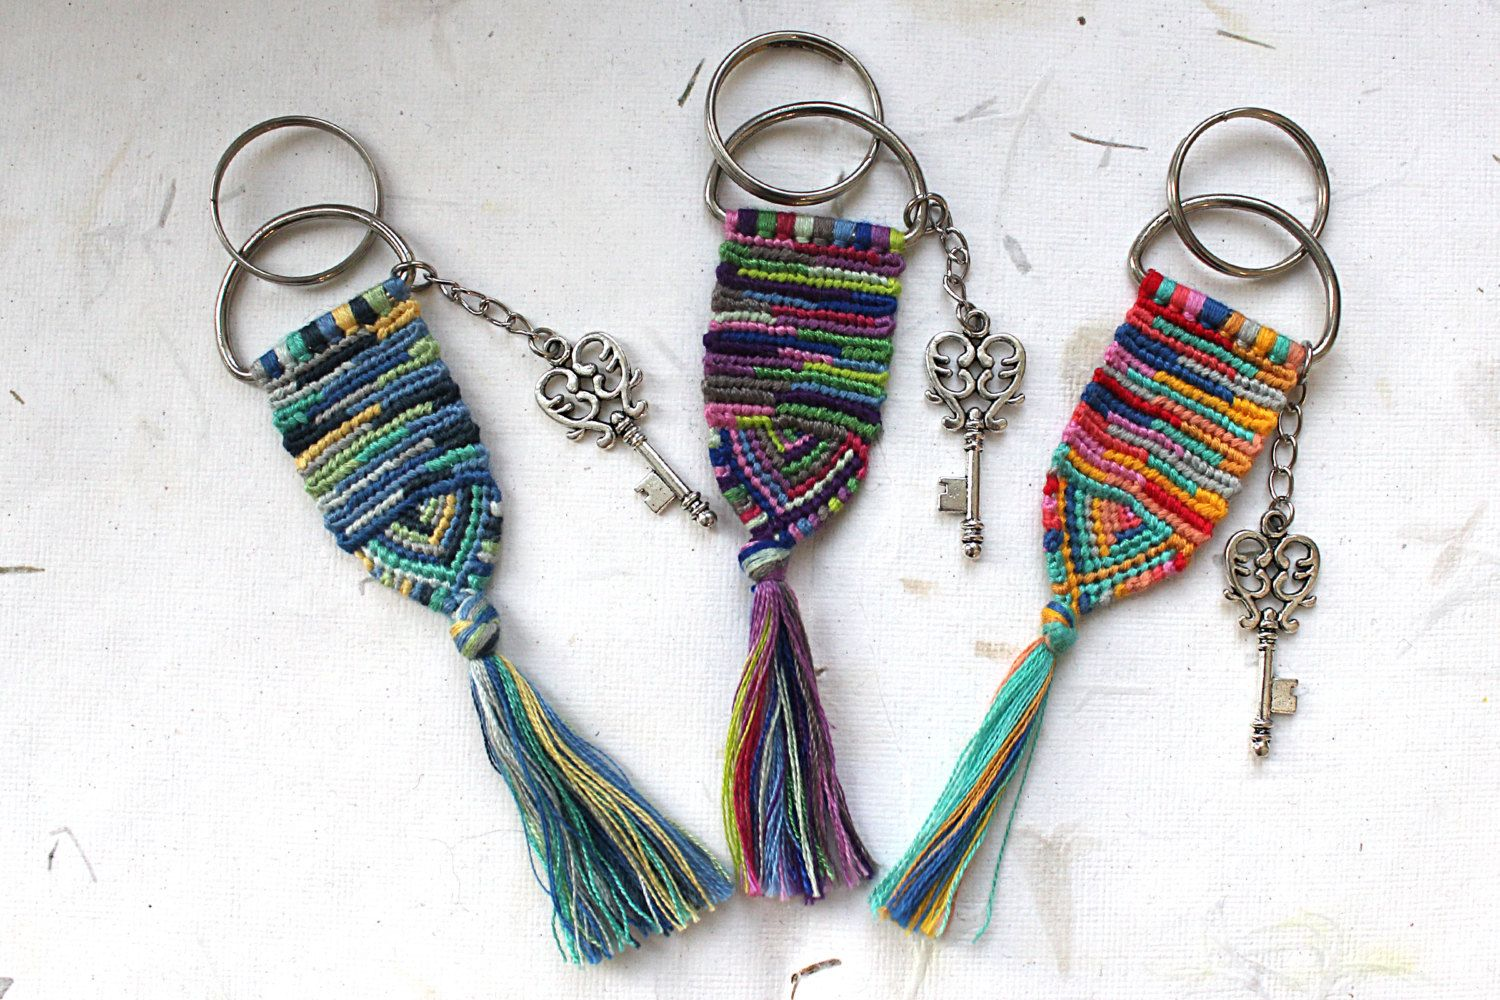 Handmade Macrame Keychain / Handwoven Keychain / Unique Hippie Tribal Boho Freestyle Keychain / Gift - pinned by pin4etsy.com